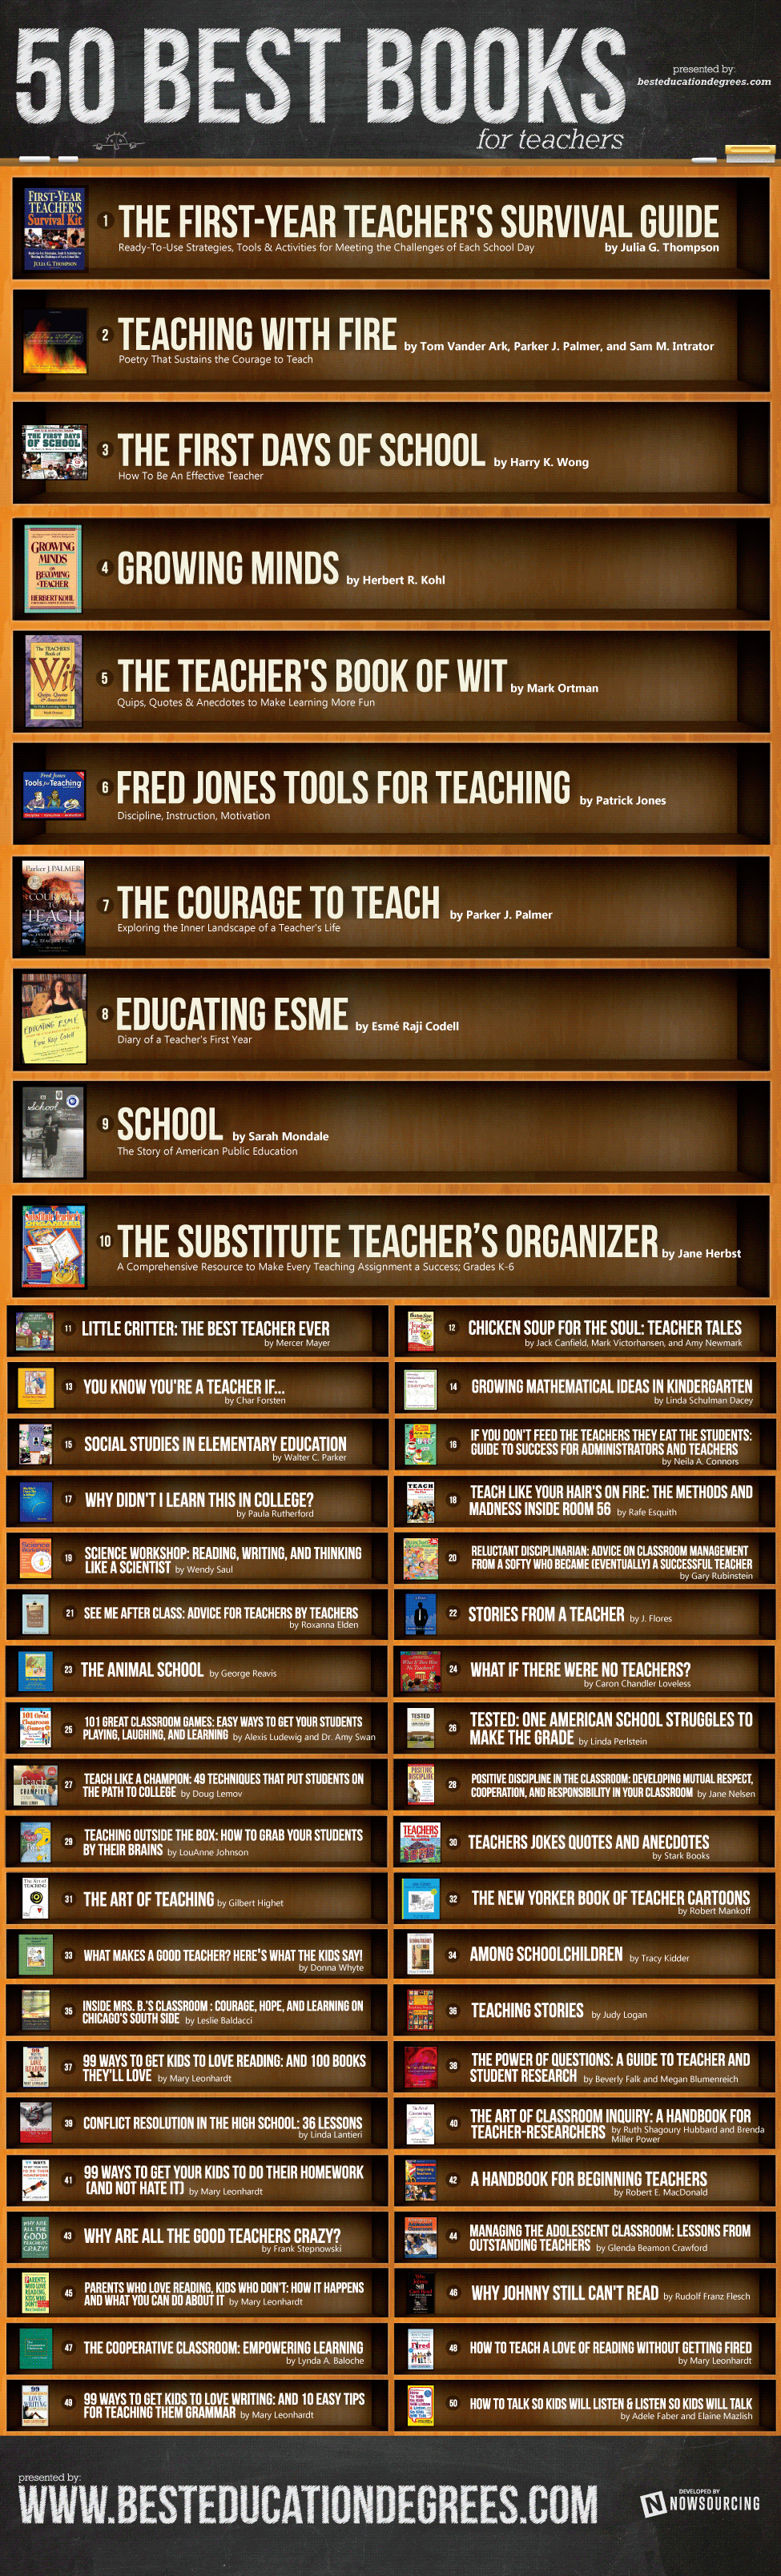 The-Top-50-Books-For-Teachers-Infographic